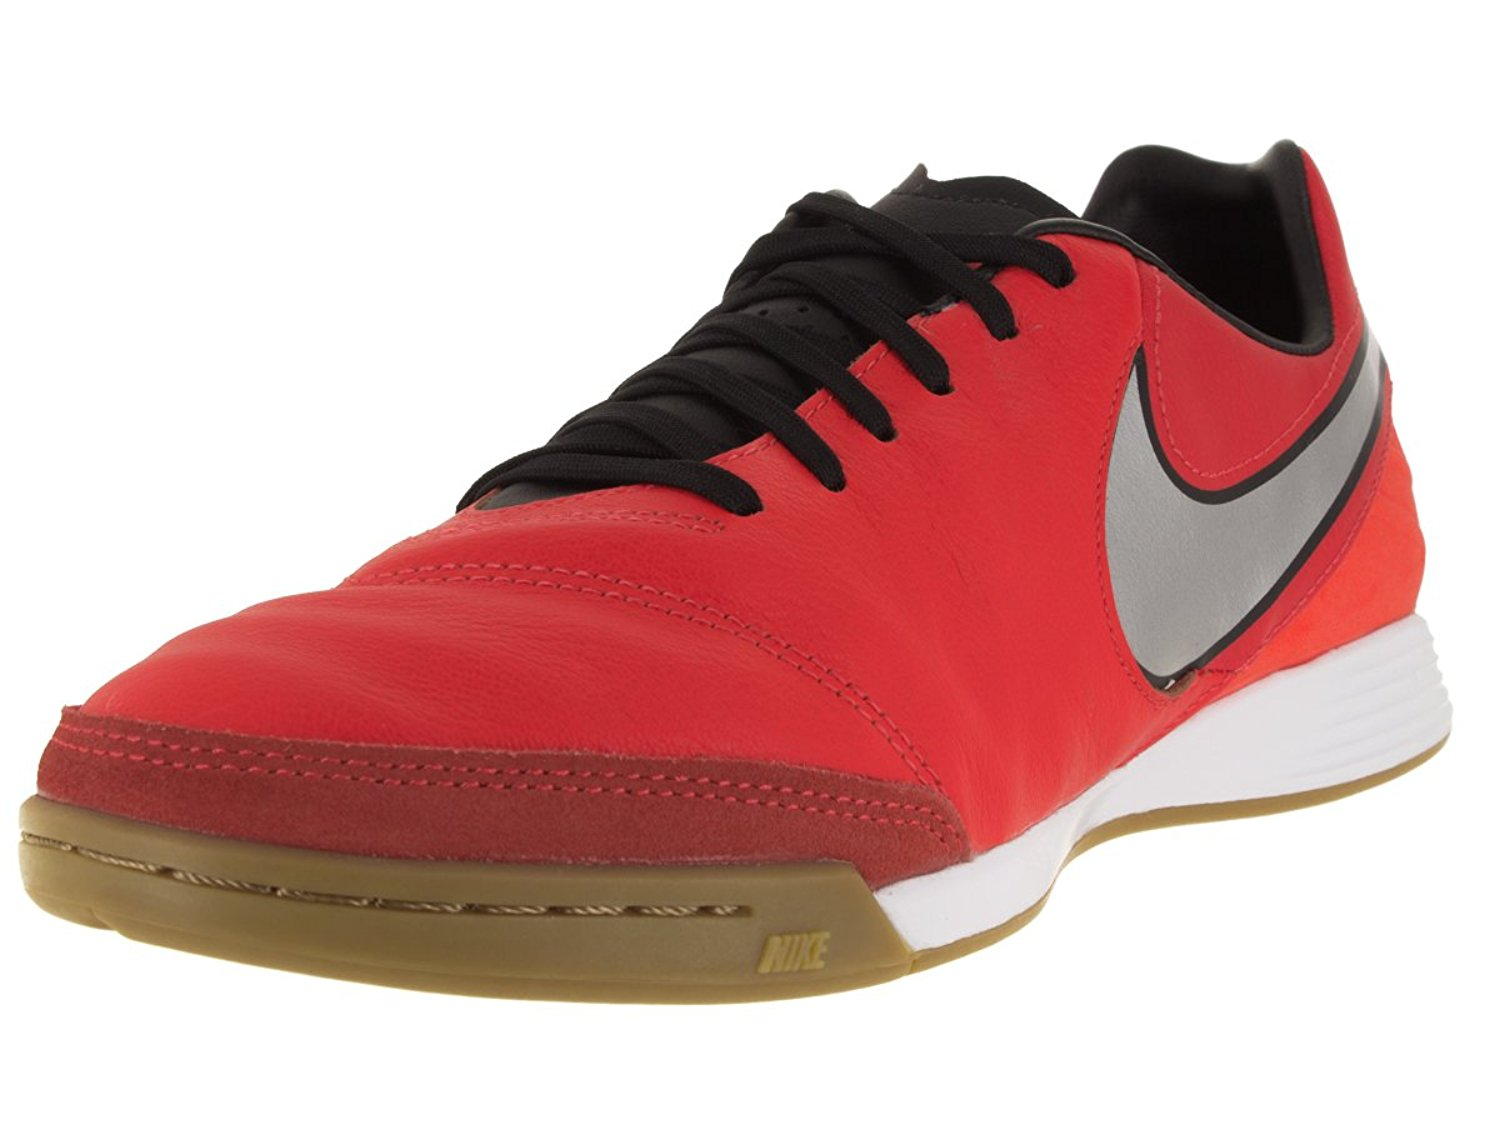 14aac267e00 Buy Nike Mens Tiempo Mystic V IC Indoor Soccer Shoe in Cheap Price ...